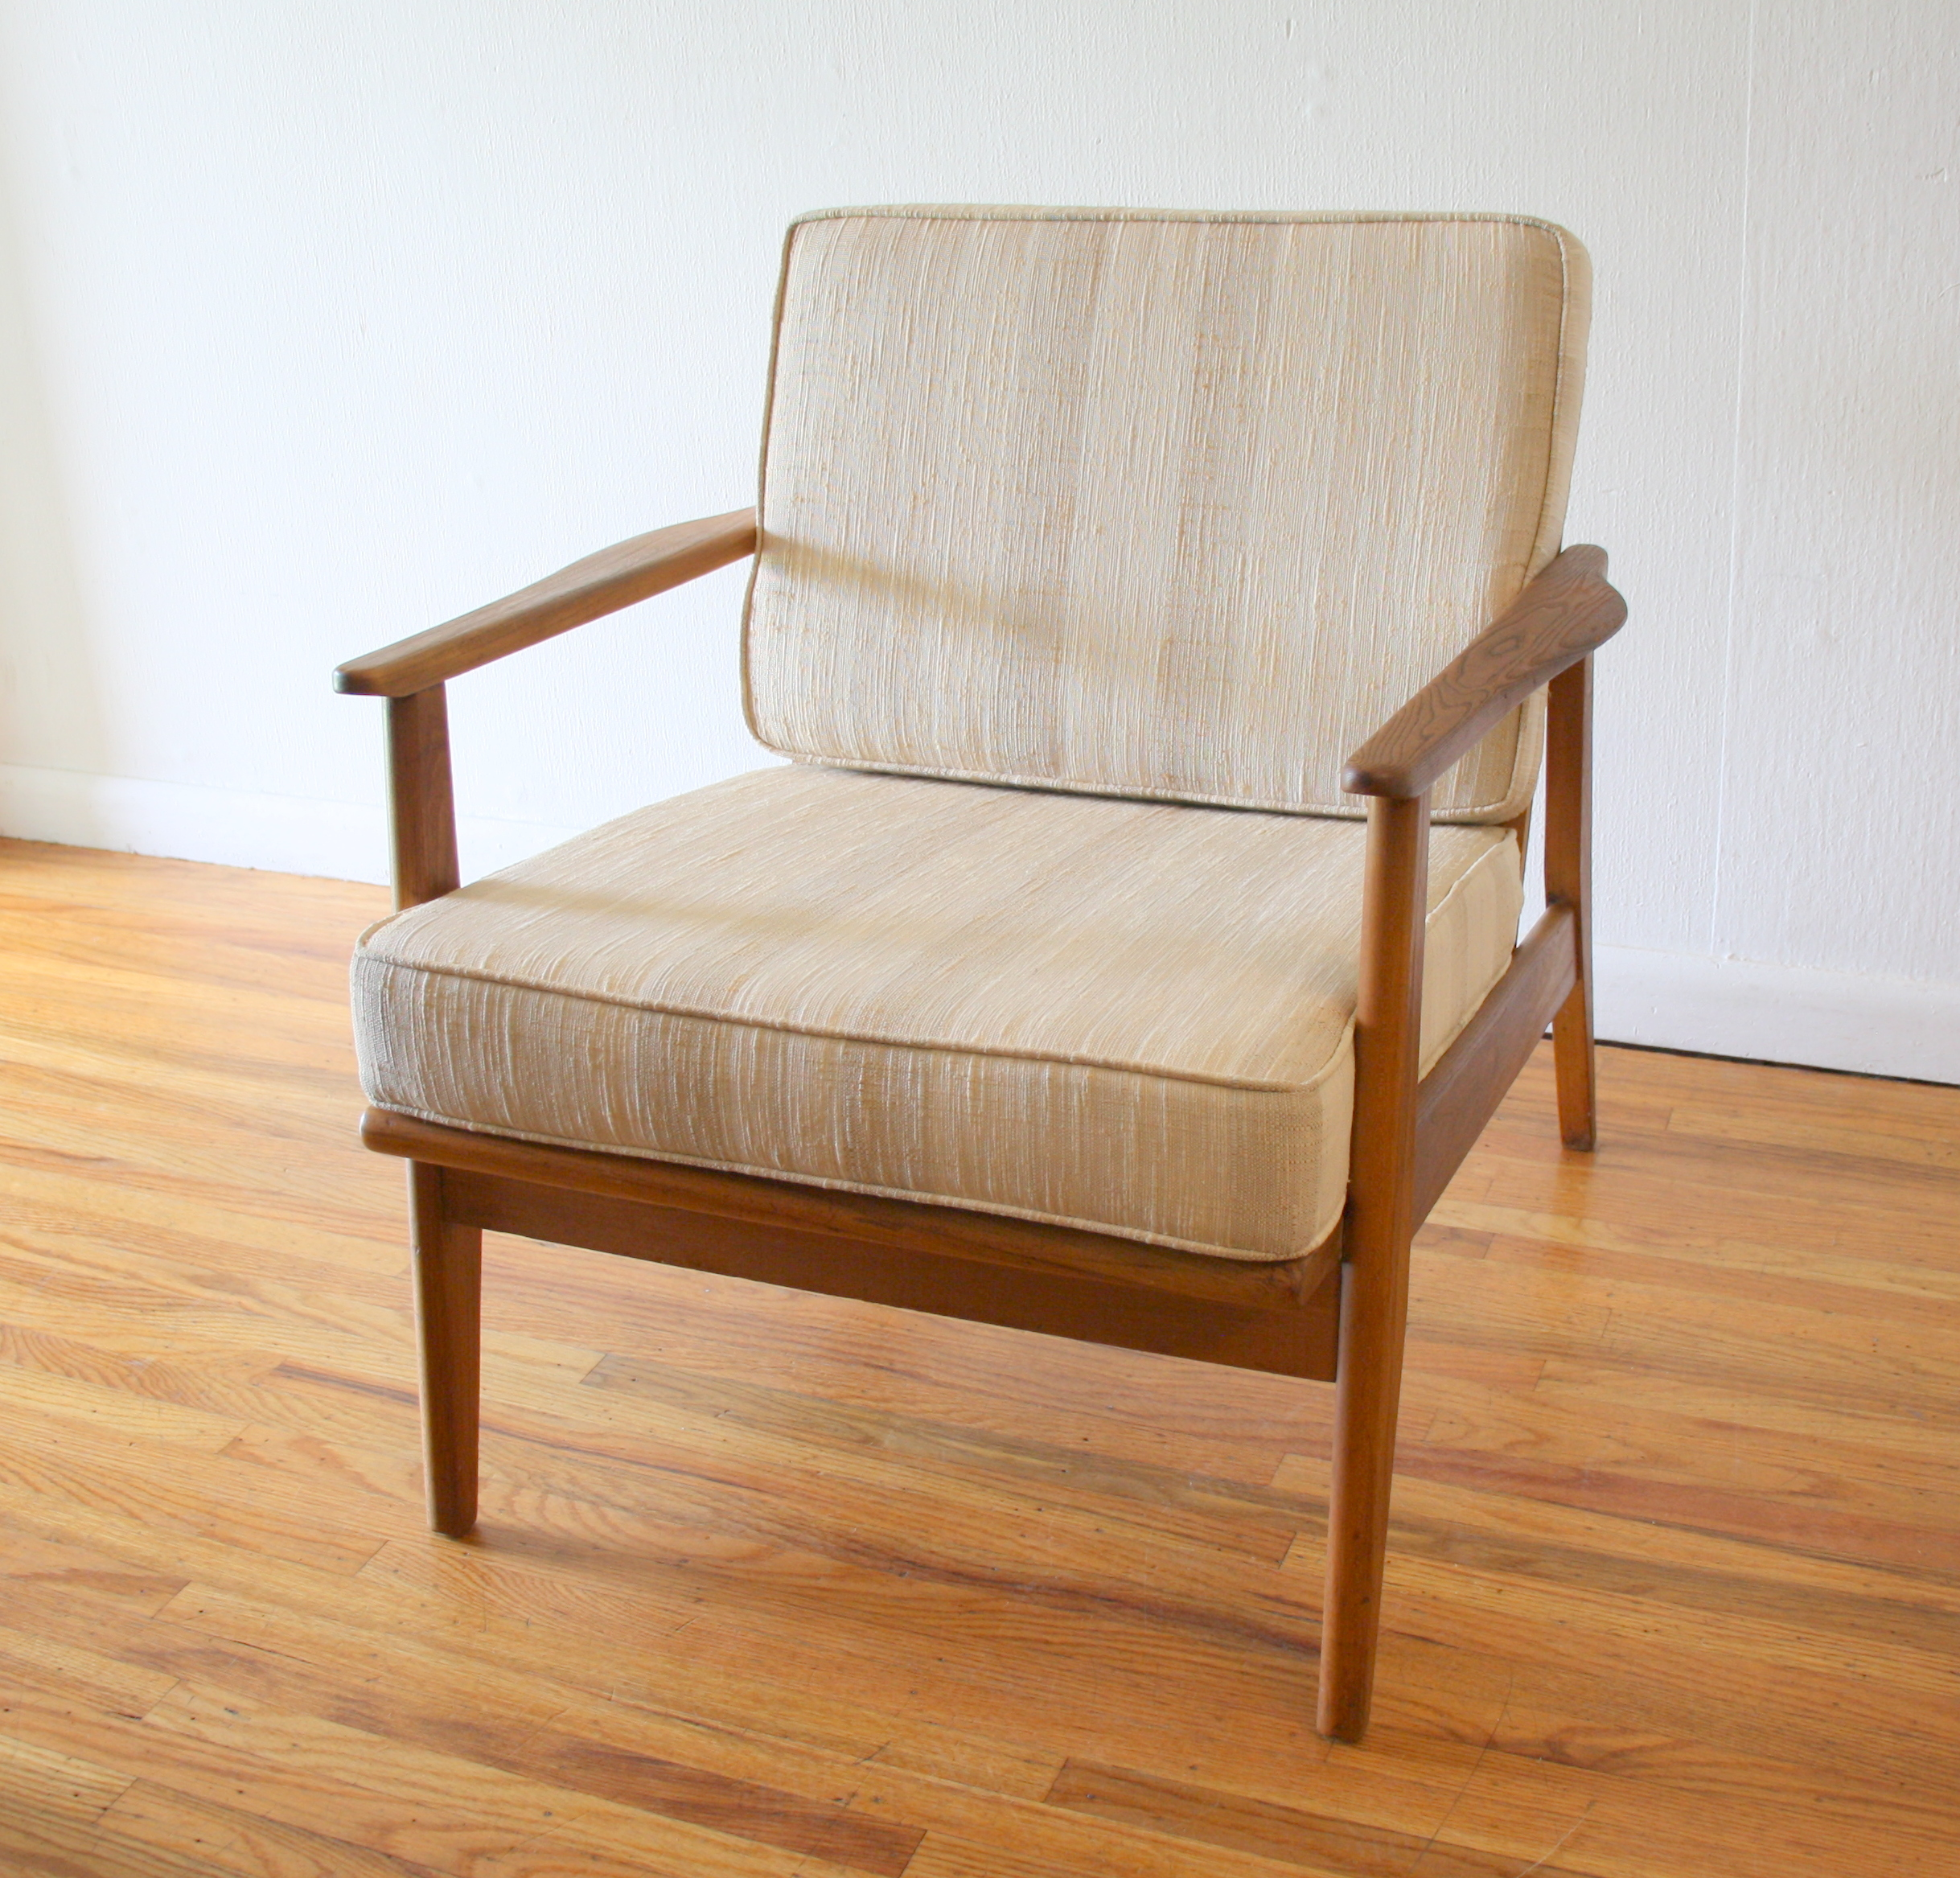 Mcm arm chair with neutral striped upholstery 2.JPG